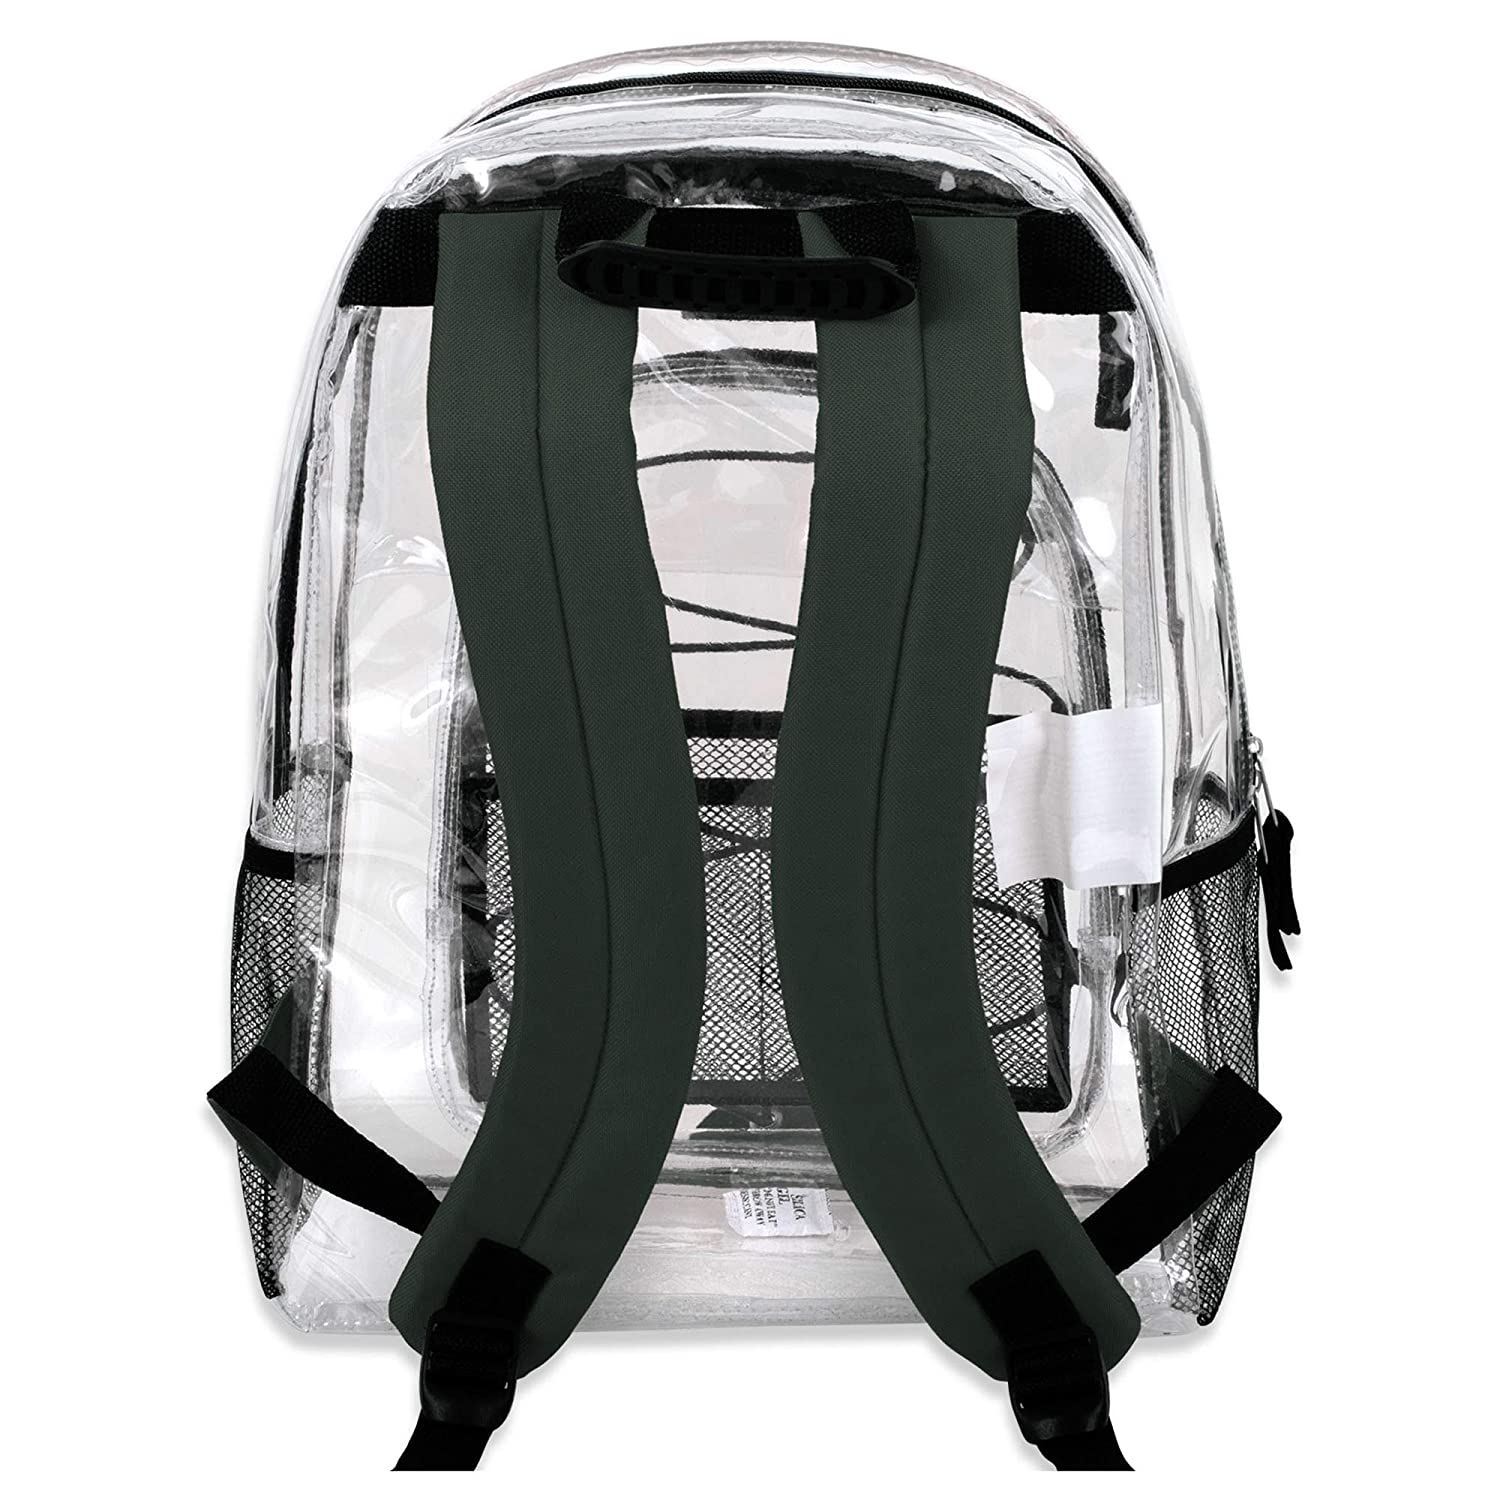 Sporty Design /& Reinforced Straps Clear See Through Backpack Grey Transparent School Bag